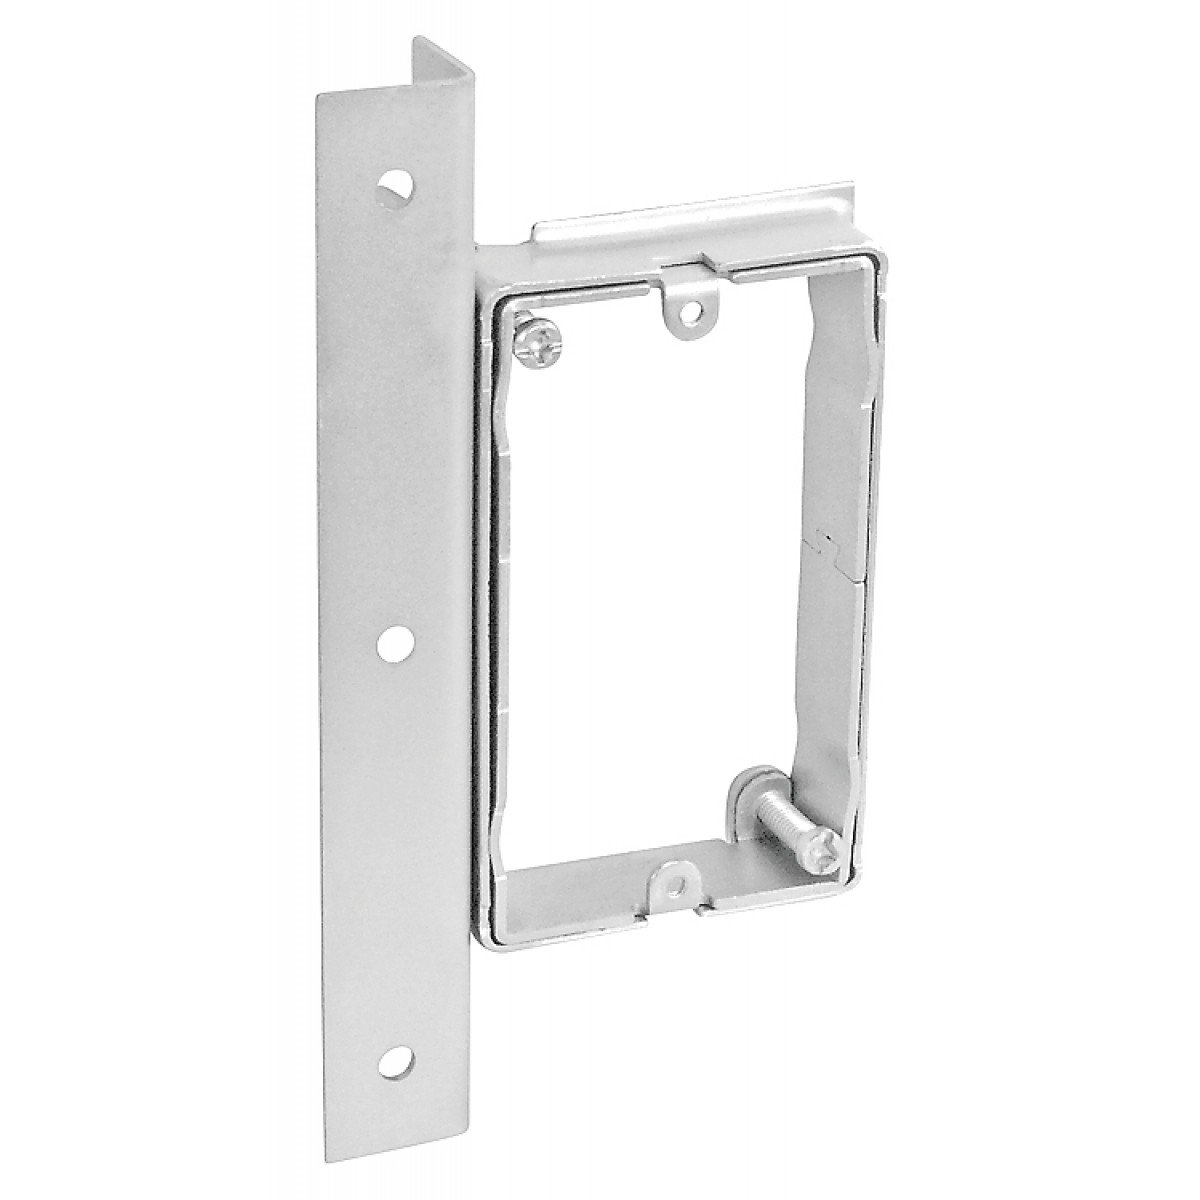 1 Pc, Zinc Plated Steel 4 Square One Gang Adjustable Depth Device Bracket For Stud Walls, 5/8 to 1-1/4 In. Raised